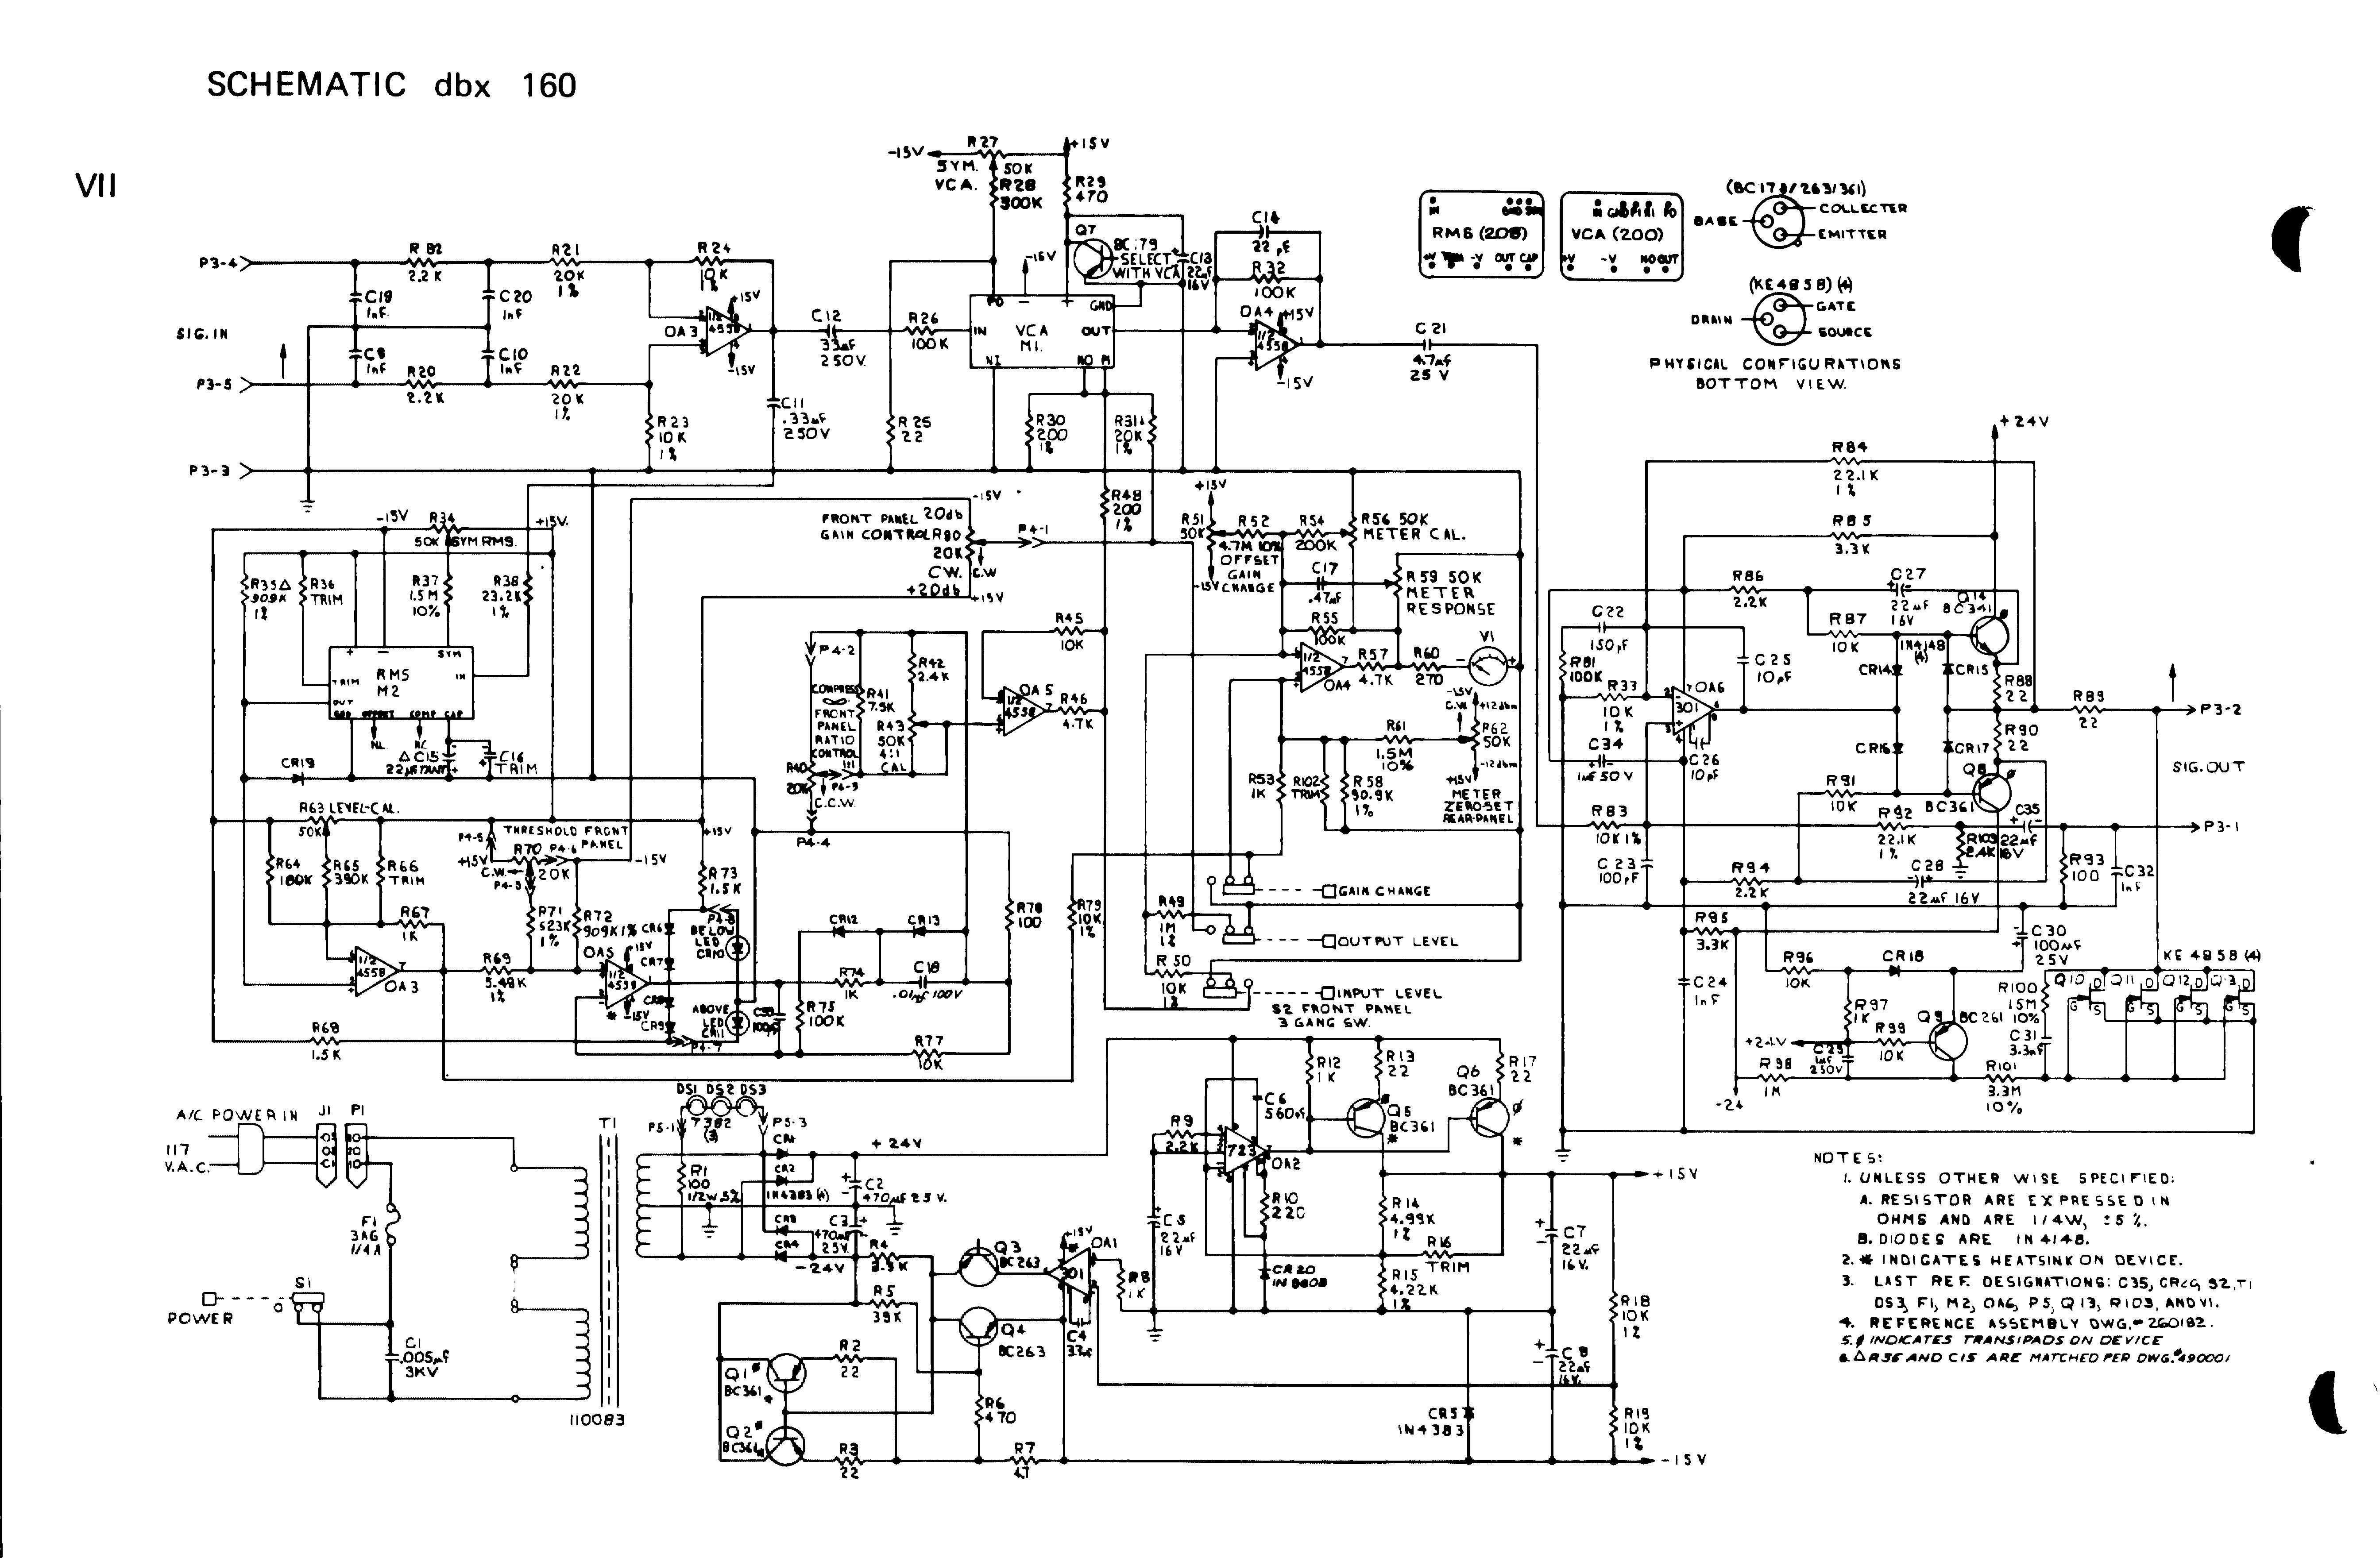 Schematic Wiring Library Pin Theremin Circuit Diagram On Pinterest Dbx 160